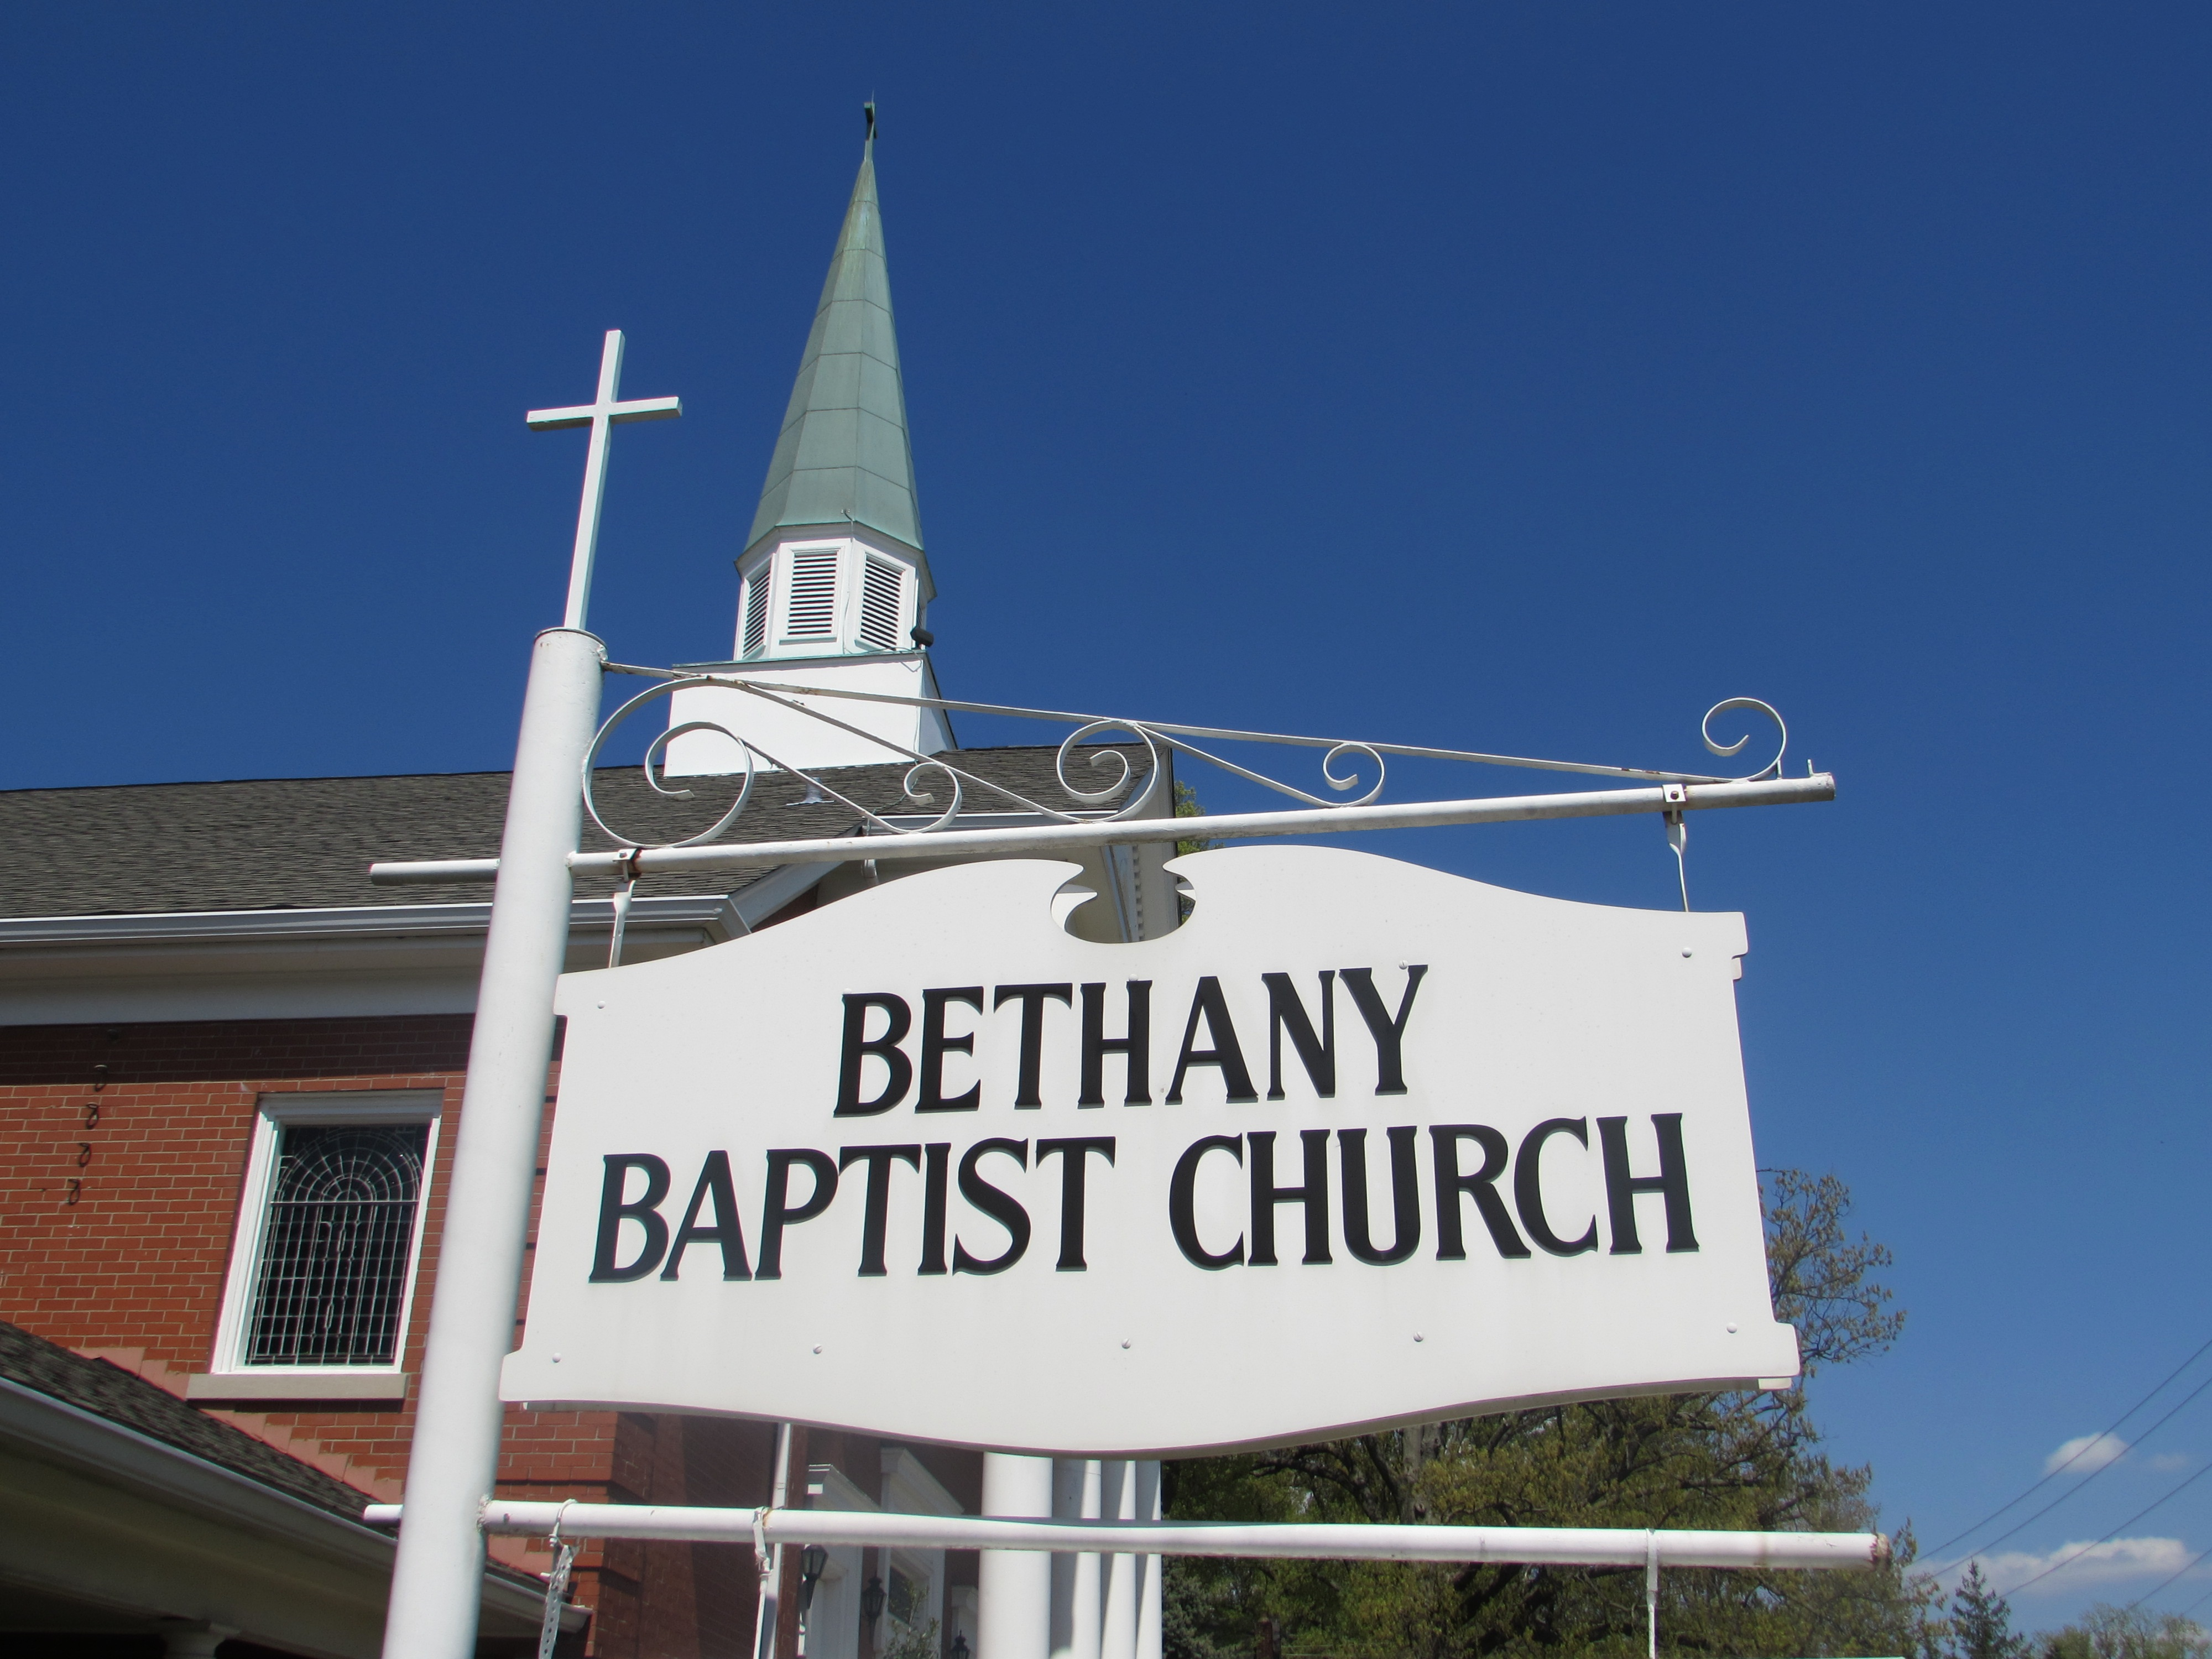 Who we are bethany baptist church louisville ky we seek to accomplish this purpose by malvernweather Gallery